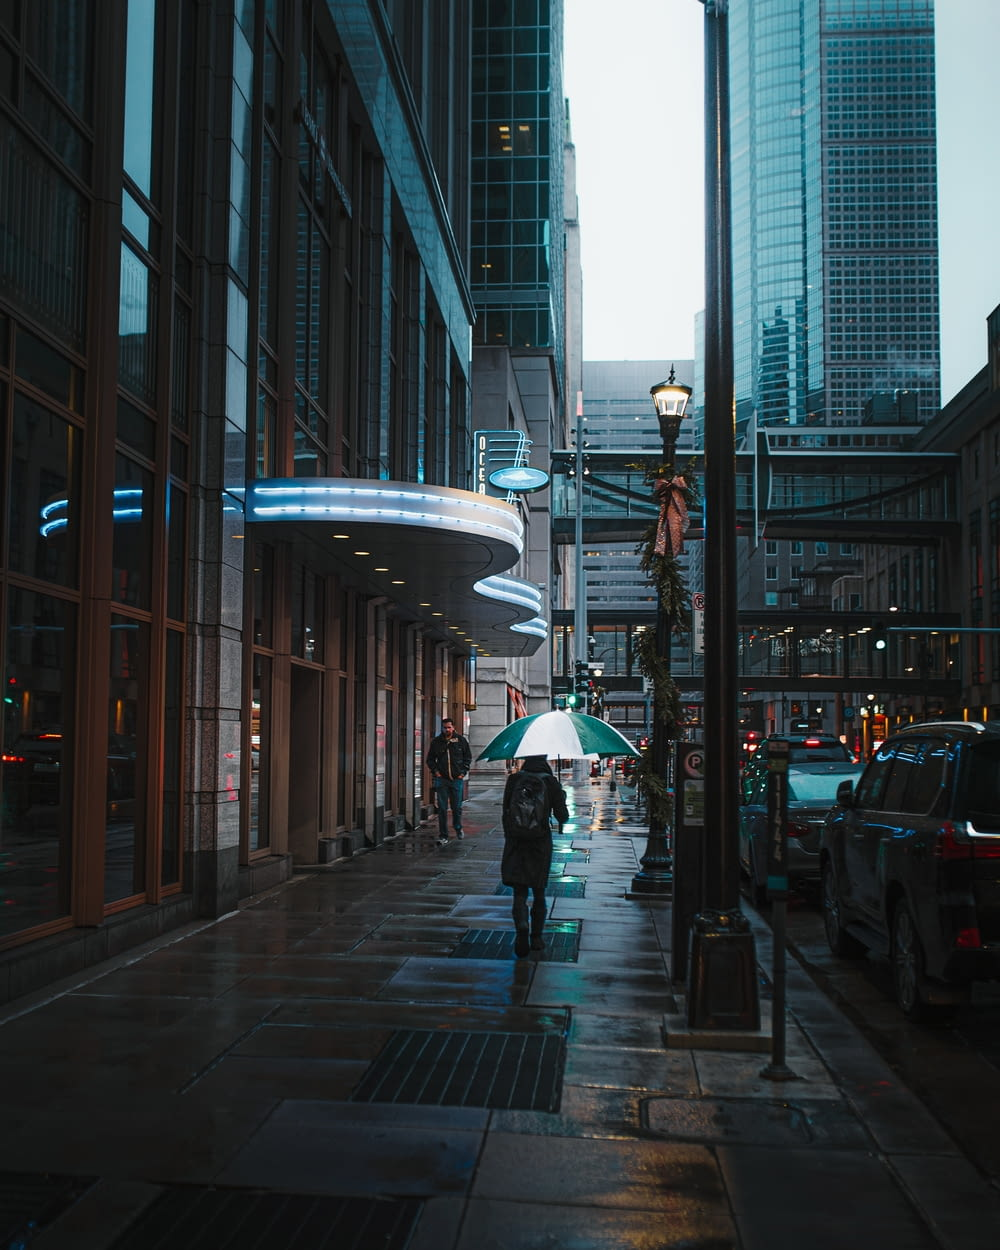 person using umbrella while walking on pathway and different vehicles on road during night time